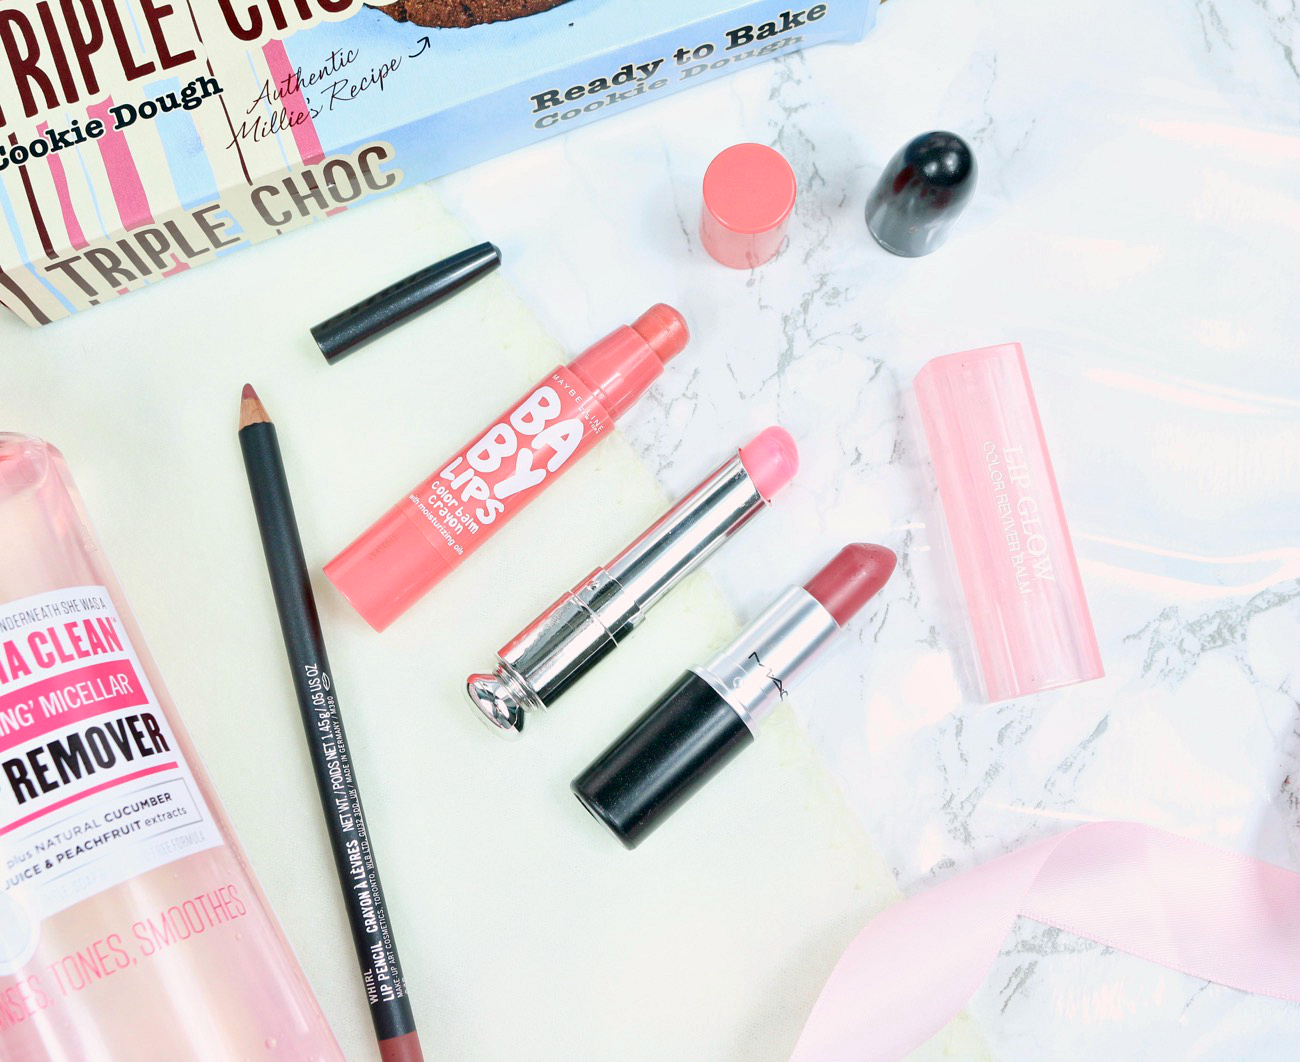 A beauty makeup review on my February Favourites including Maybelline Baby Lips, MAC Mehr, MAC Whirl, Dior Addict Lip Glow, Soap & Glory Total Drama Makeup Remover, Maybelline Push Up Drama Angel Mascara, MAC's Burgundy Times Nine Eyeshadow Palette and Millies Frozen Cookies.